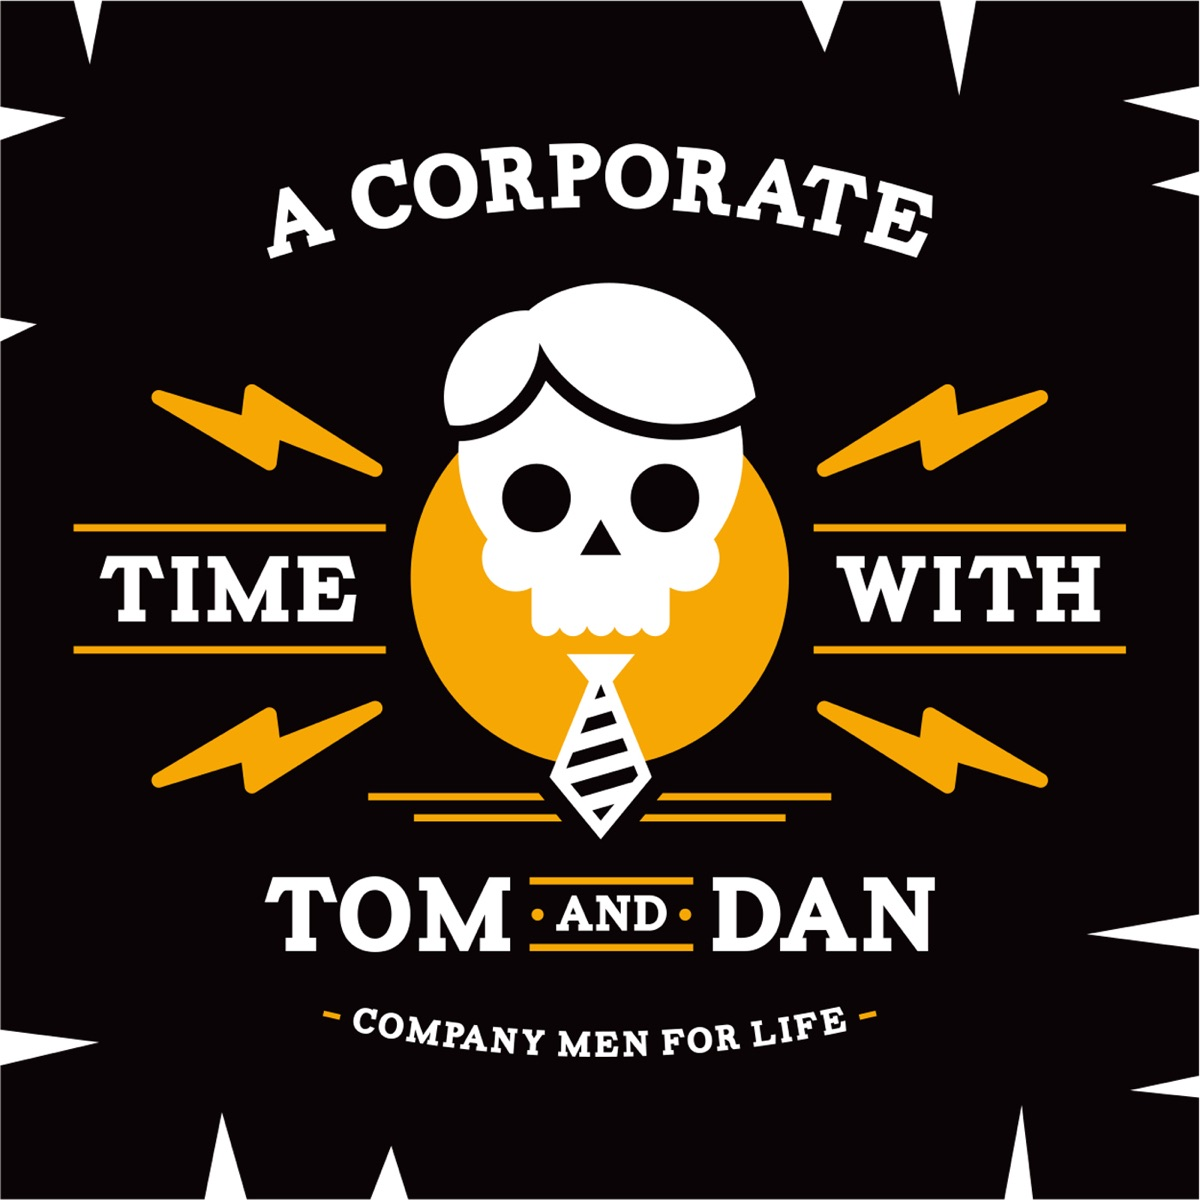 A Corporate Time with Tom and Dan